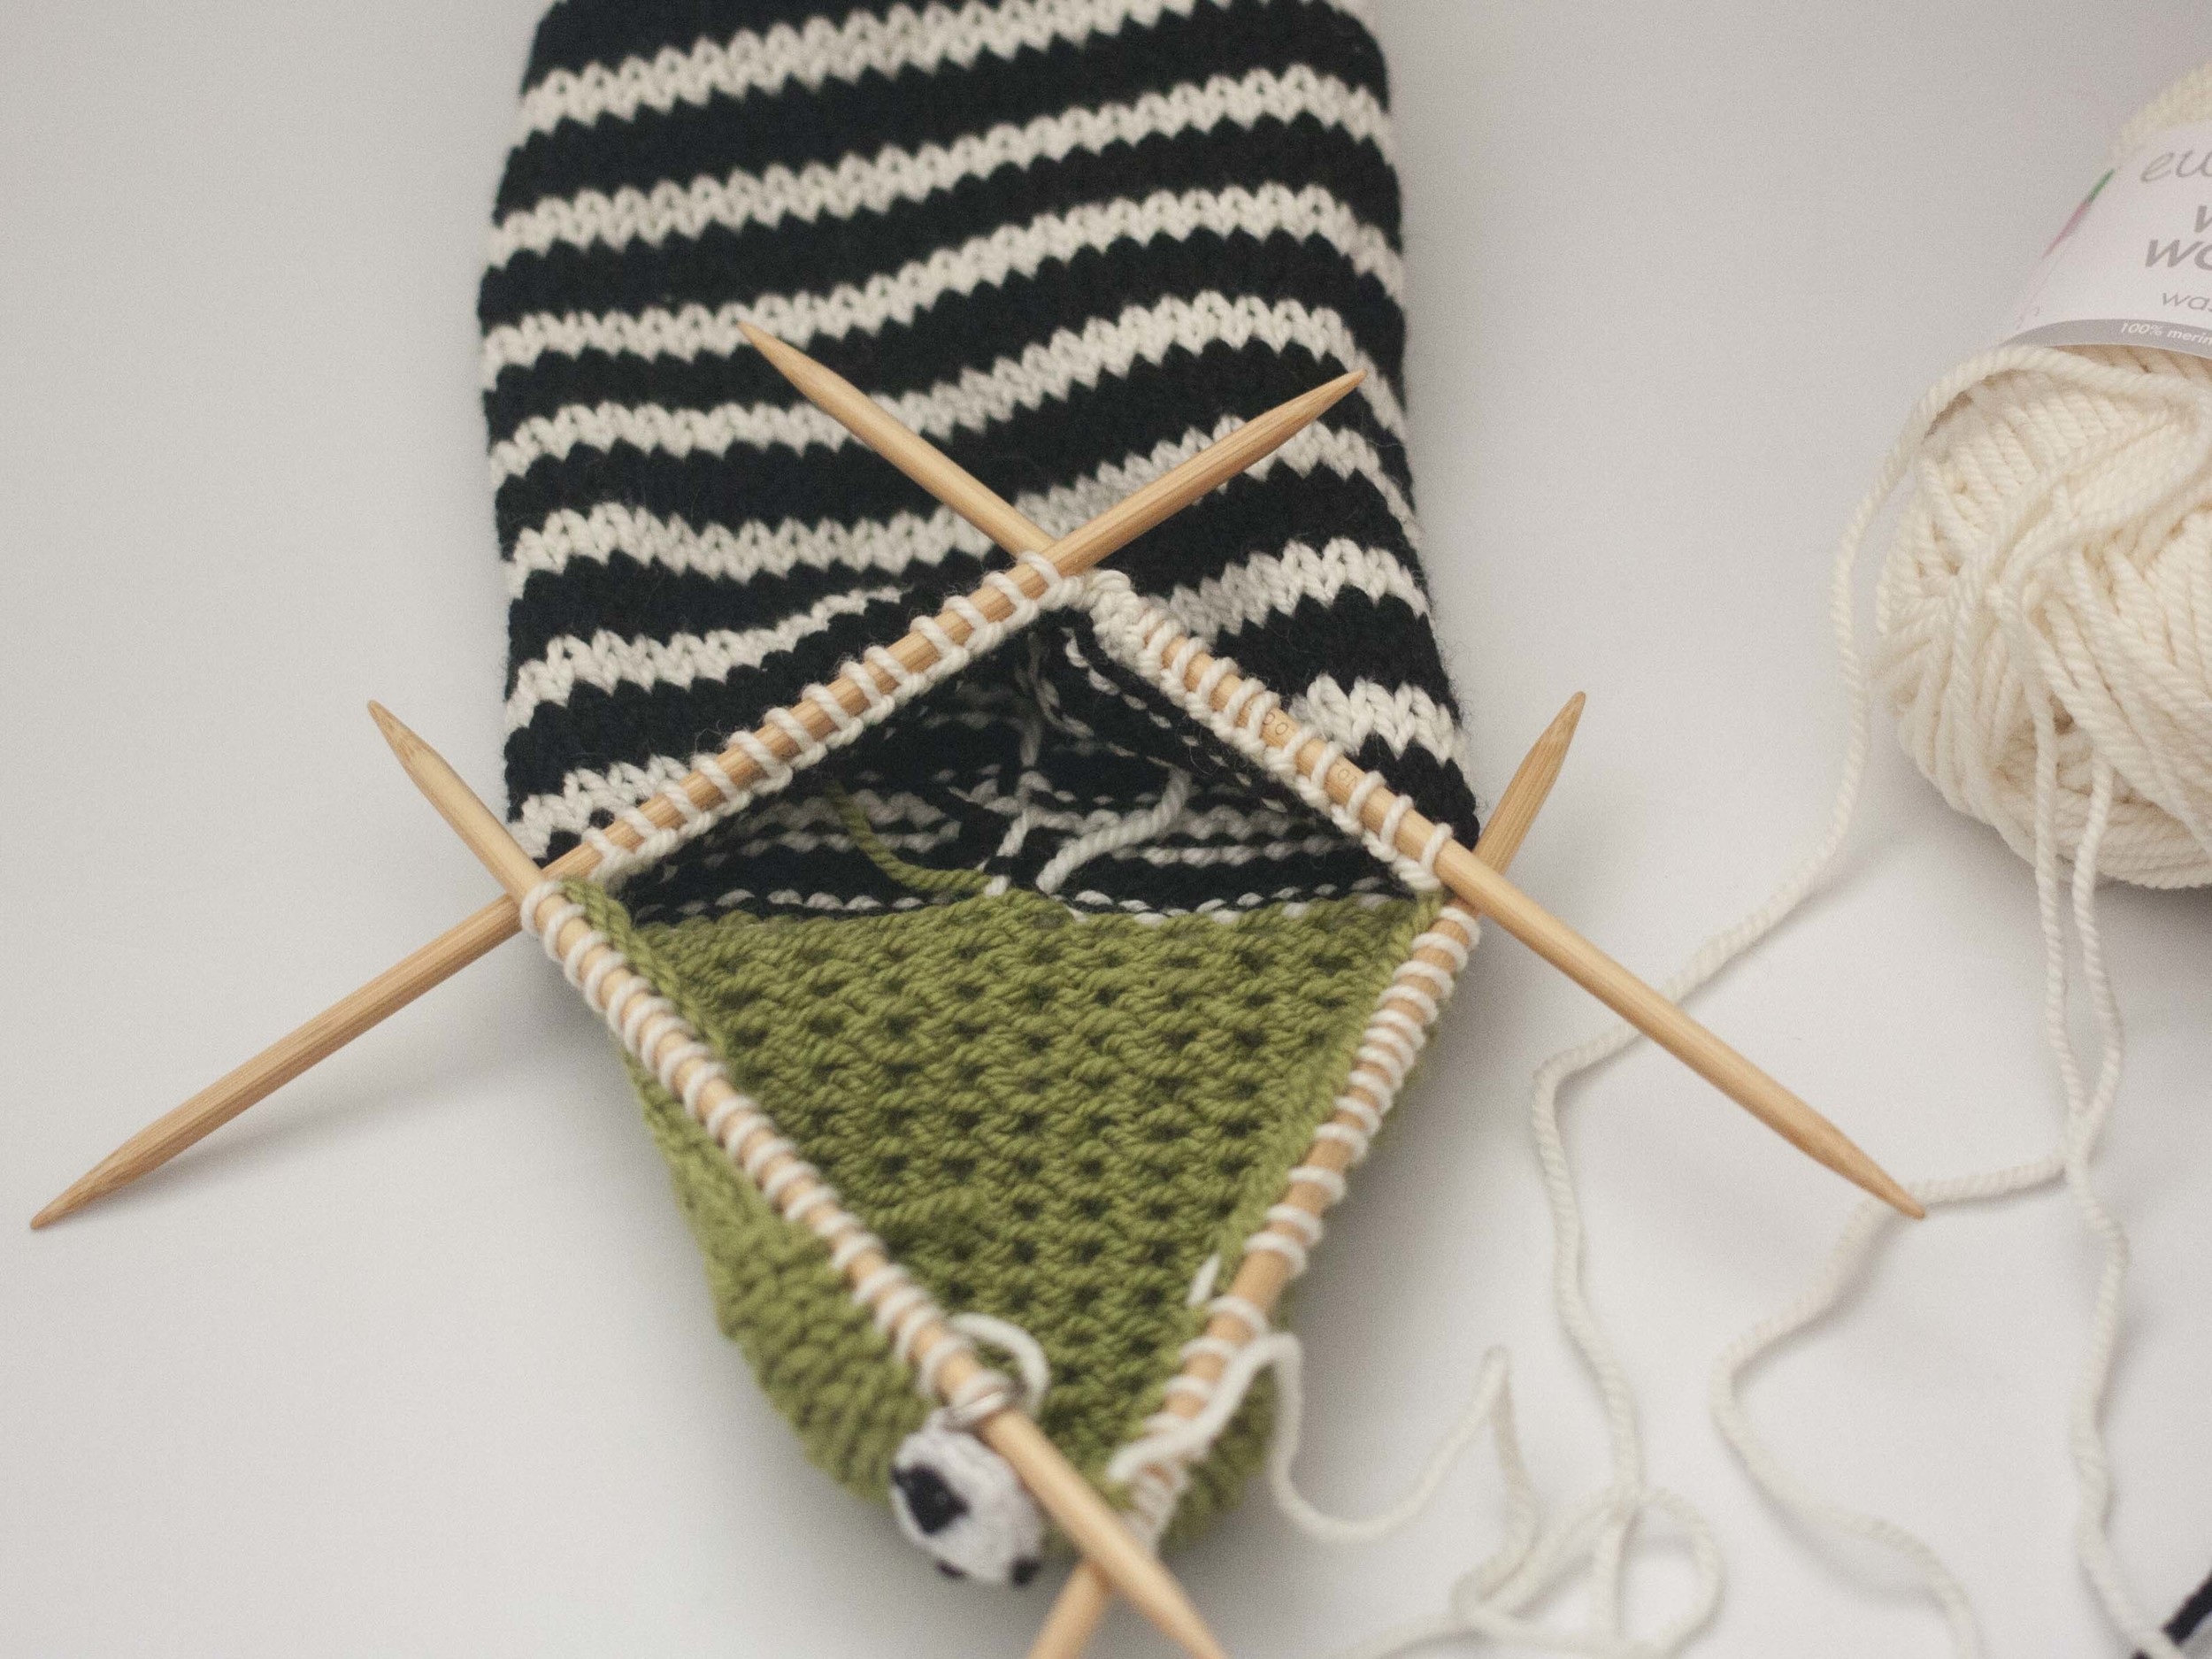 turning the heel of a sock